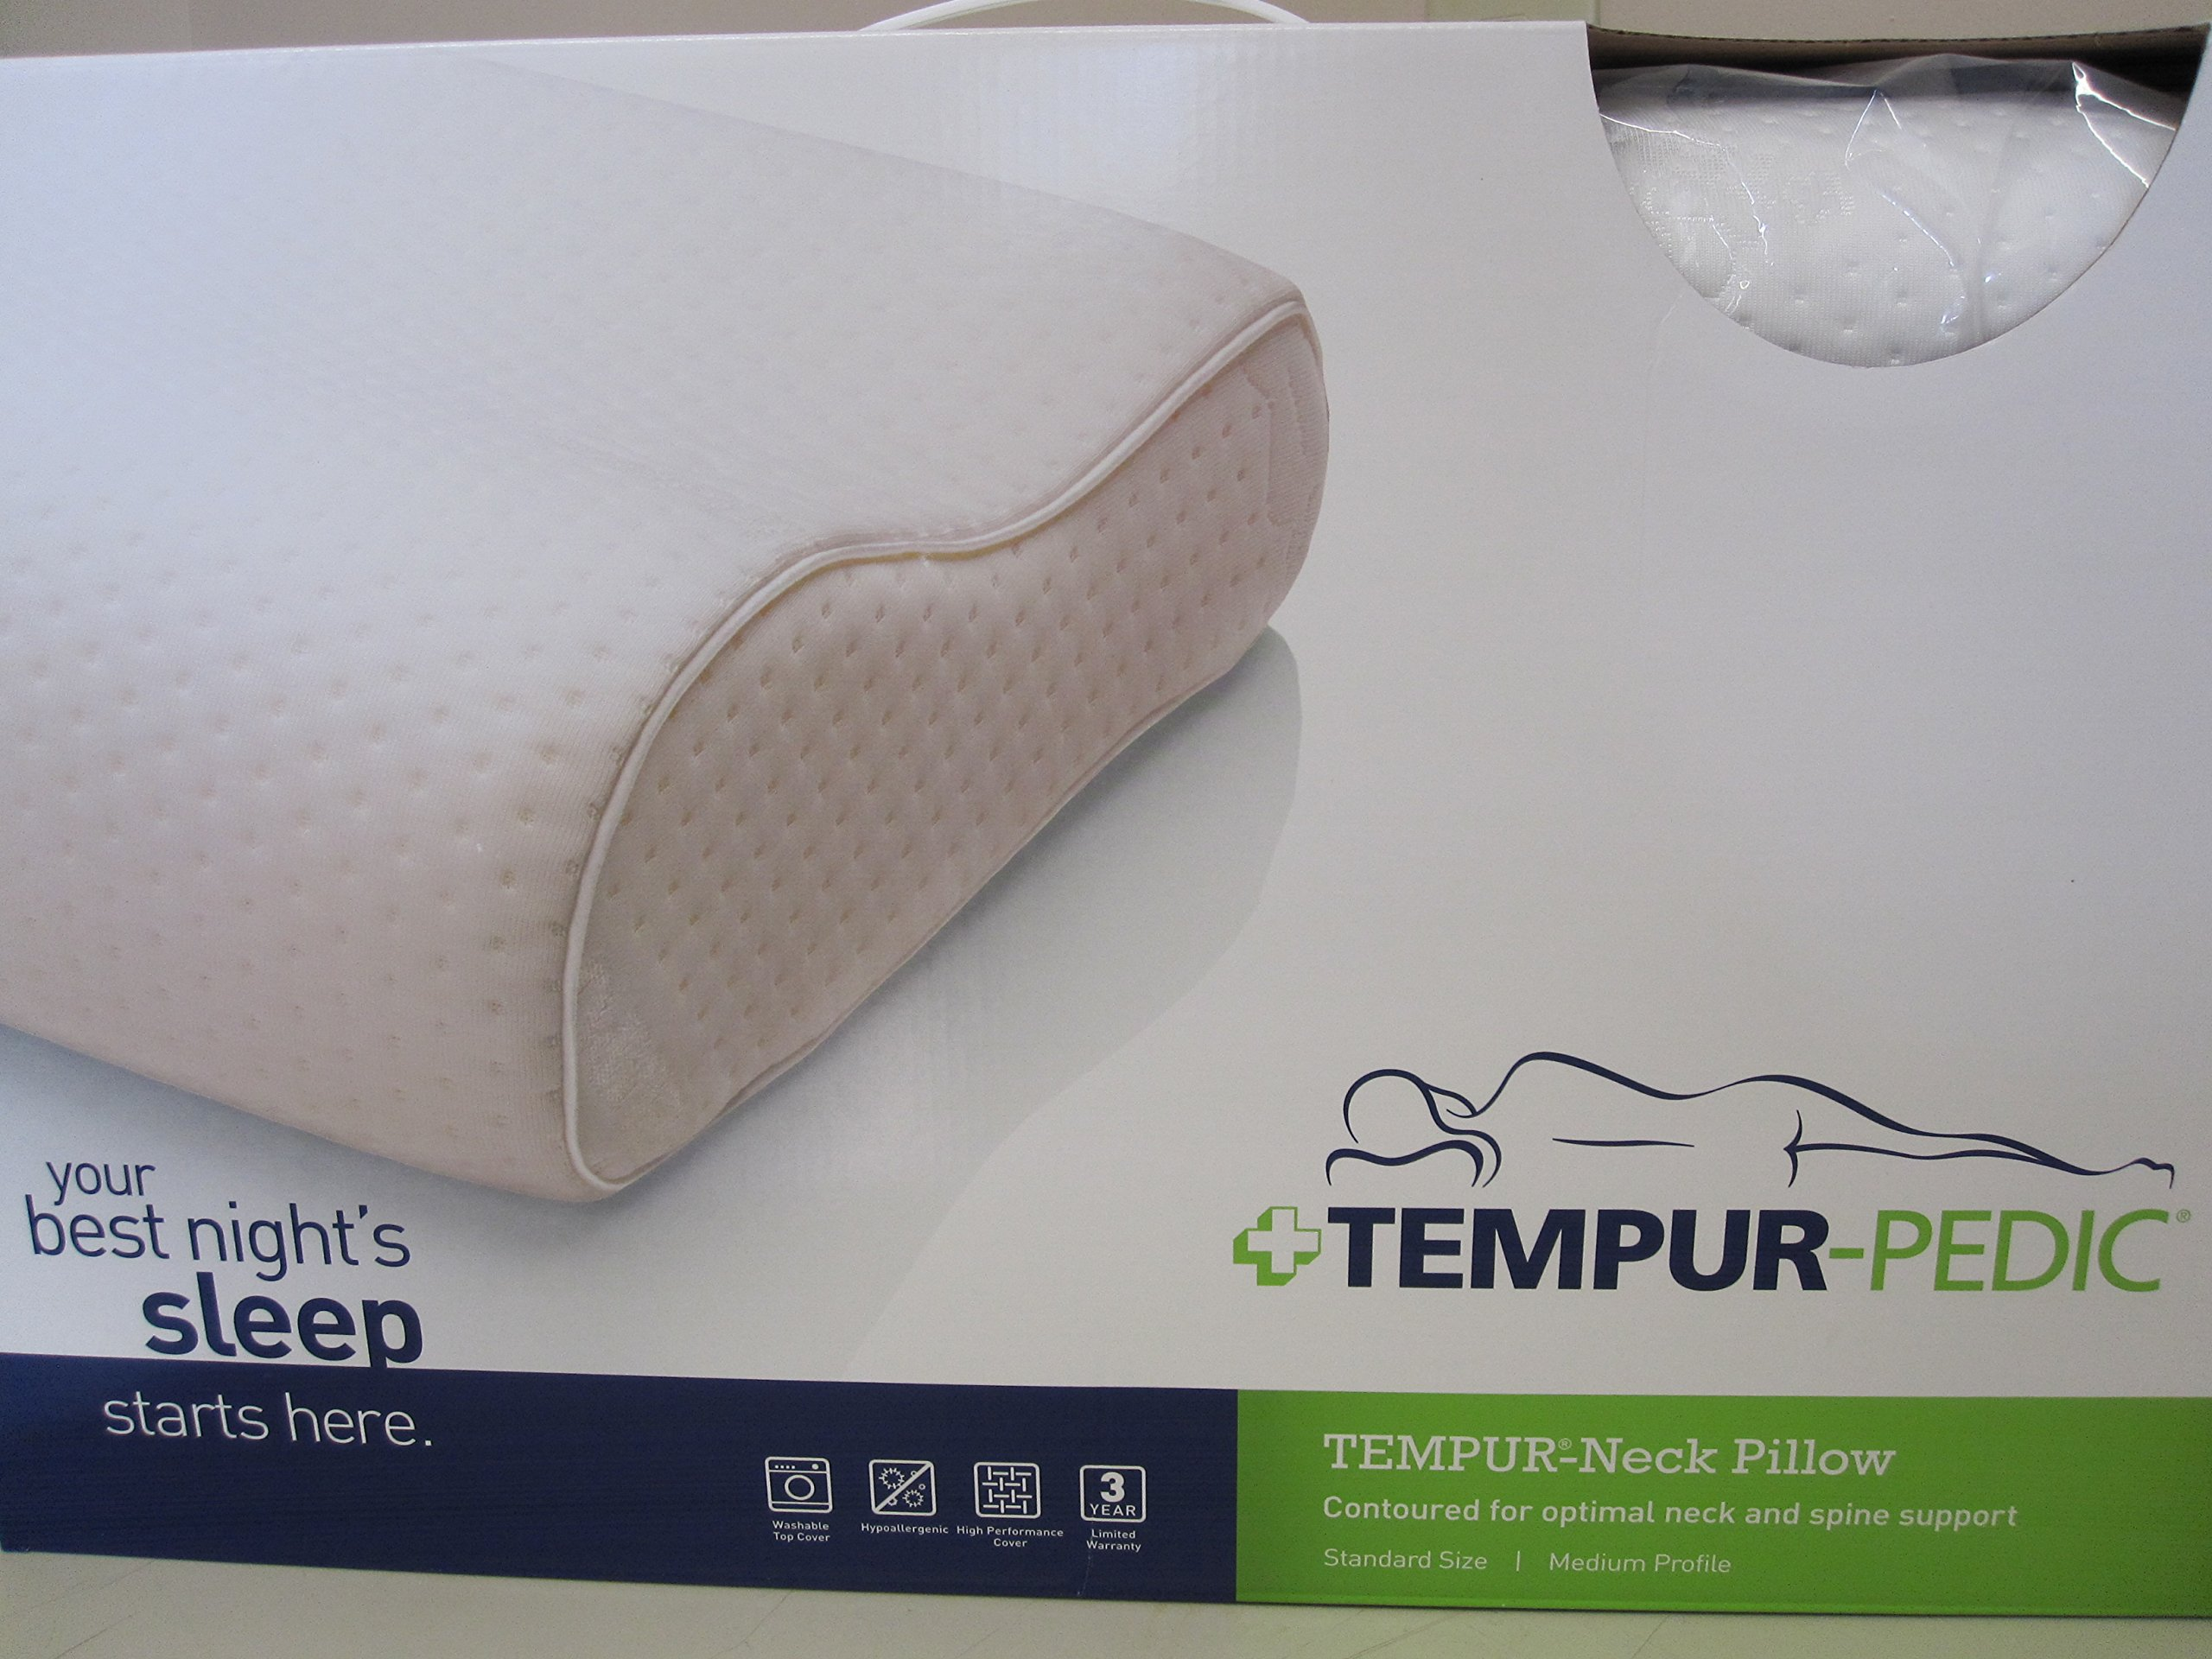 Tempur-Pedic North America- - Swedish Neck Pillow - Std Medium by Tempur-Pedic